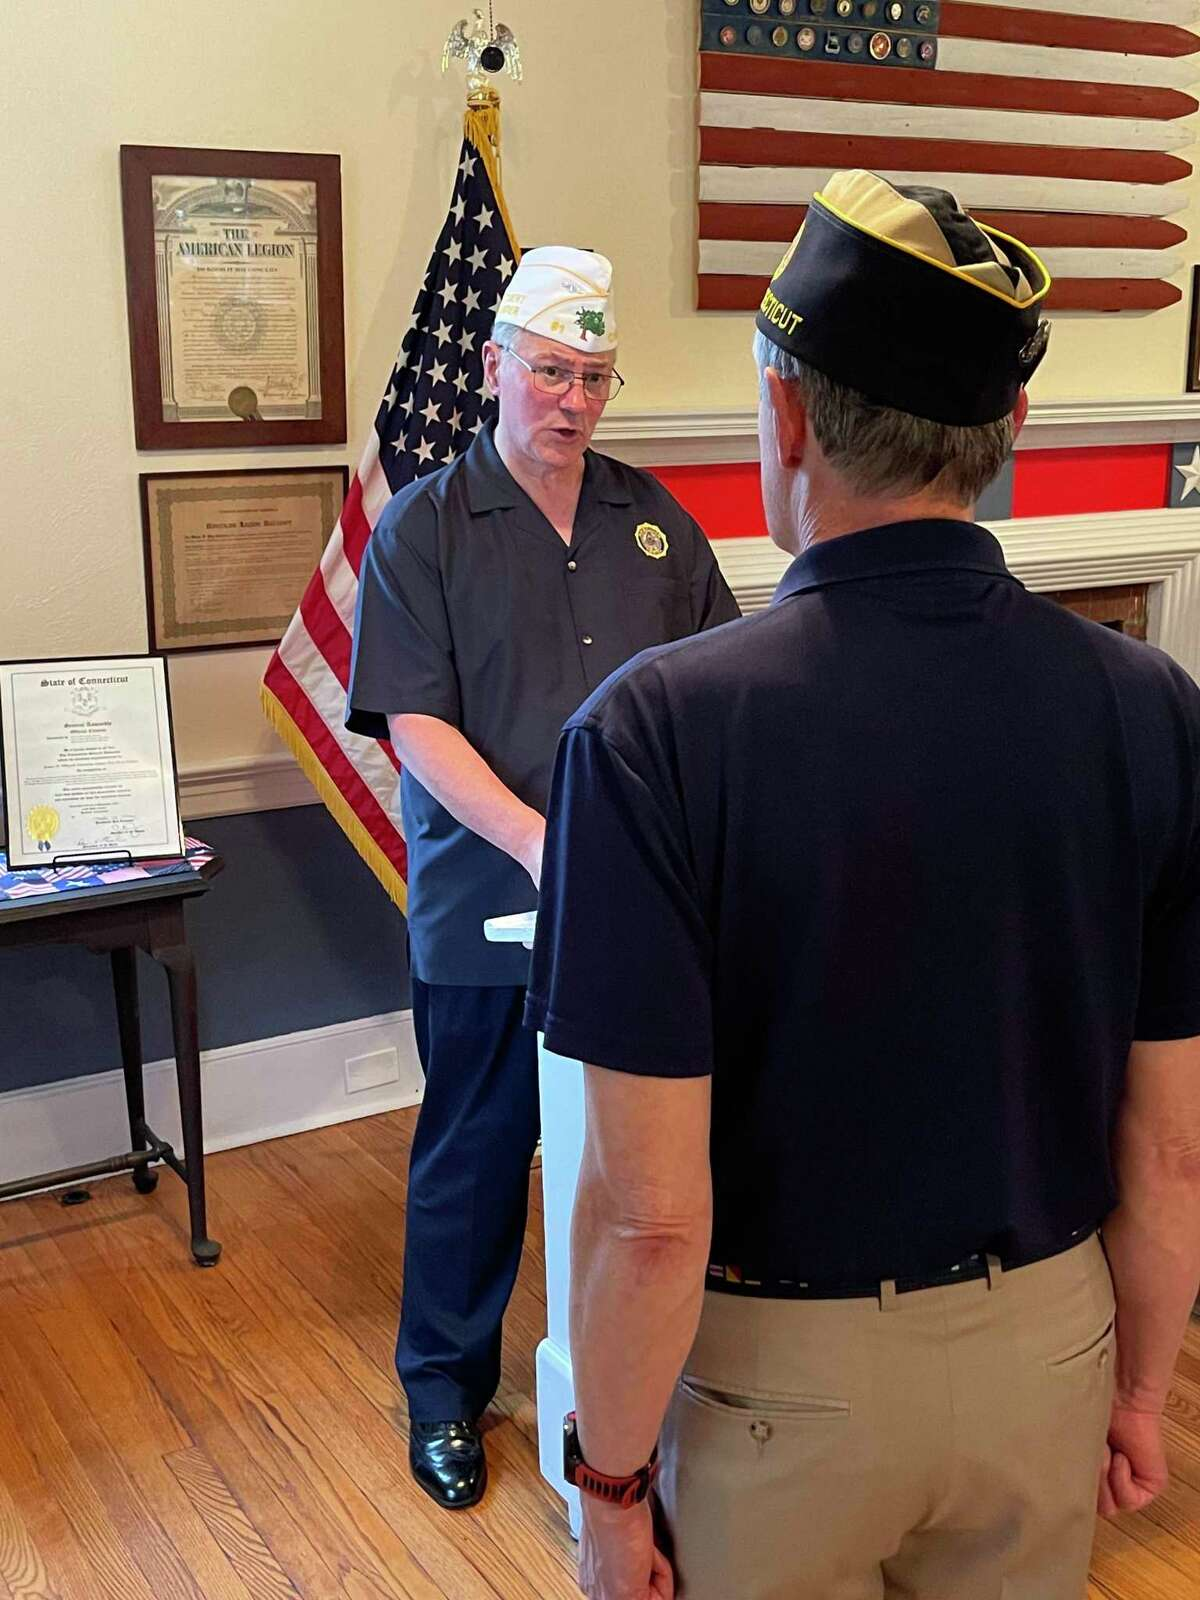 The American Legion Post 86 in Wilton, recently held its Installation of Officers ceremony at the Post, which is located at the town's 112 Old Ridgefield Road. Pictured is Department, (state,) Commander Jeff DeClerck charging Post 86 Commander Paul Niche with his duties.